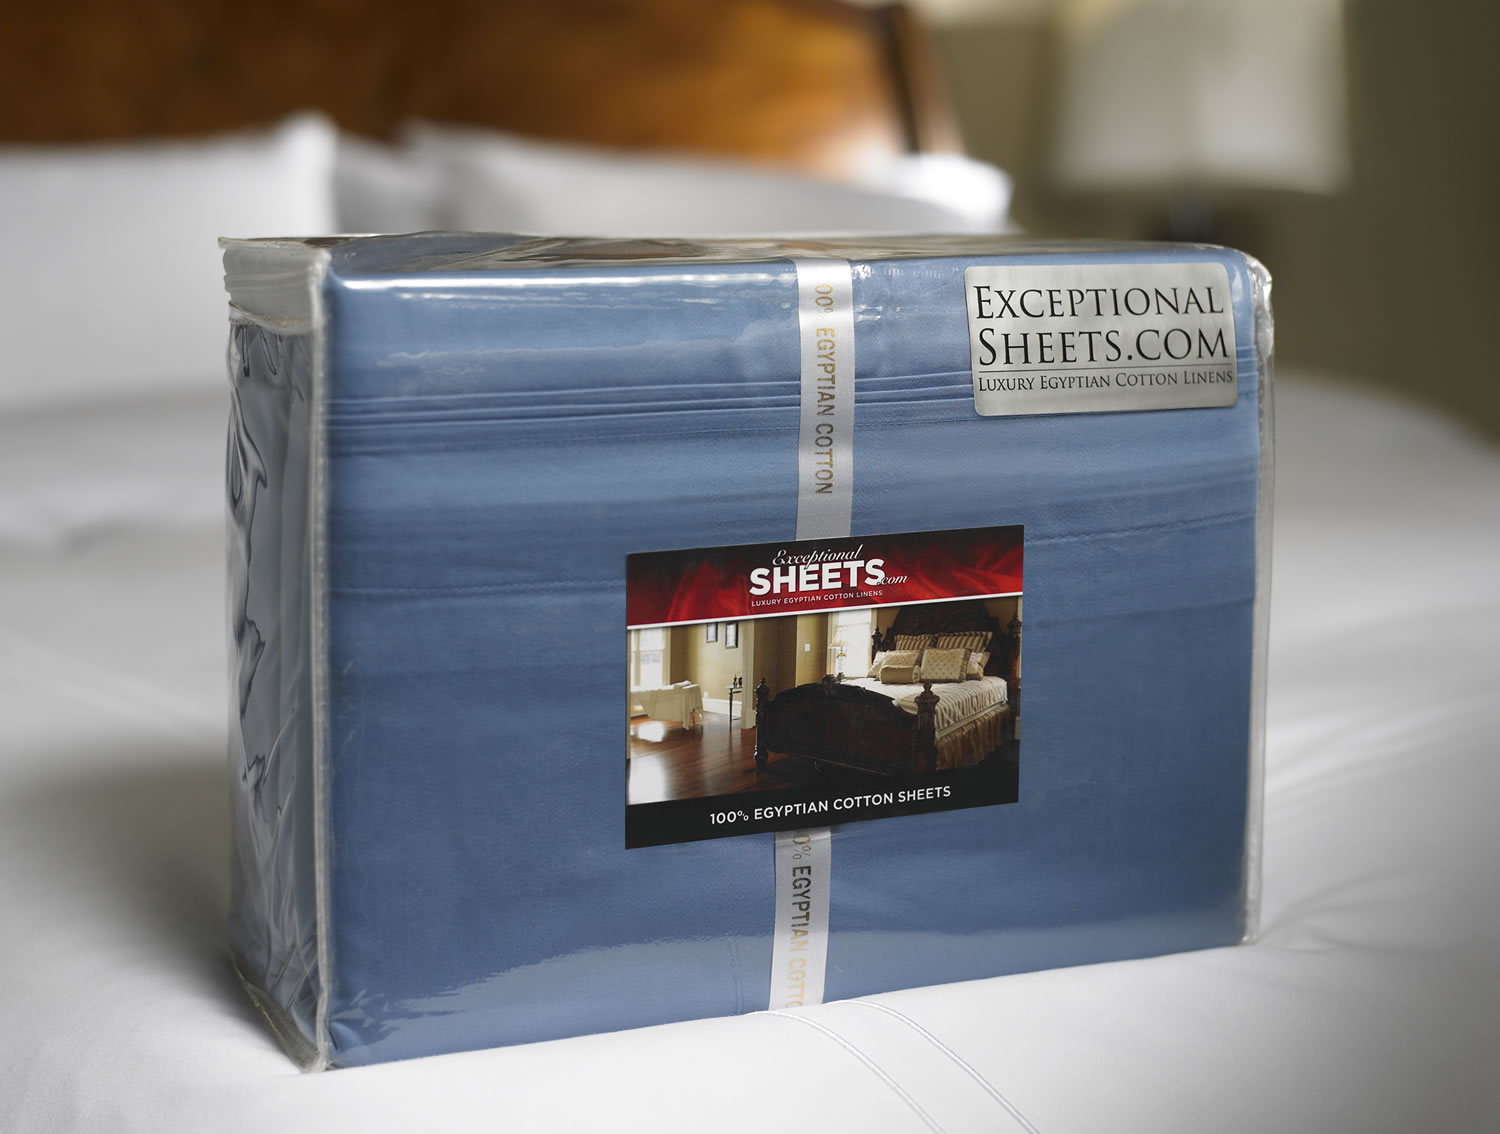 Exceptional Sheets Releases The Top 4 Reasons Consumers Favor Egyptian Cotton